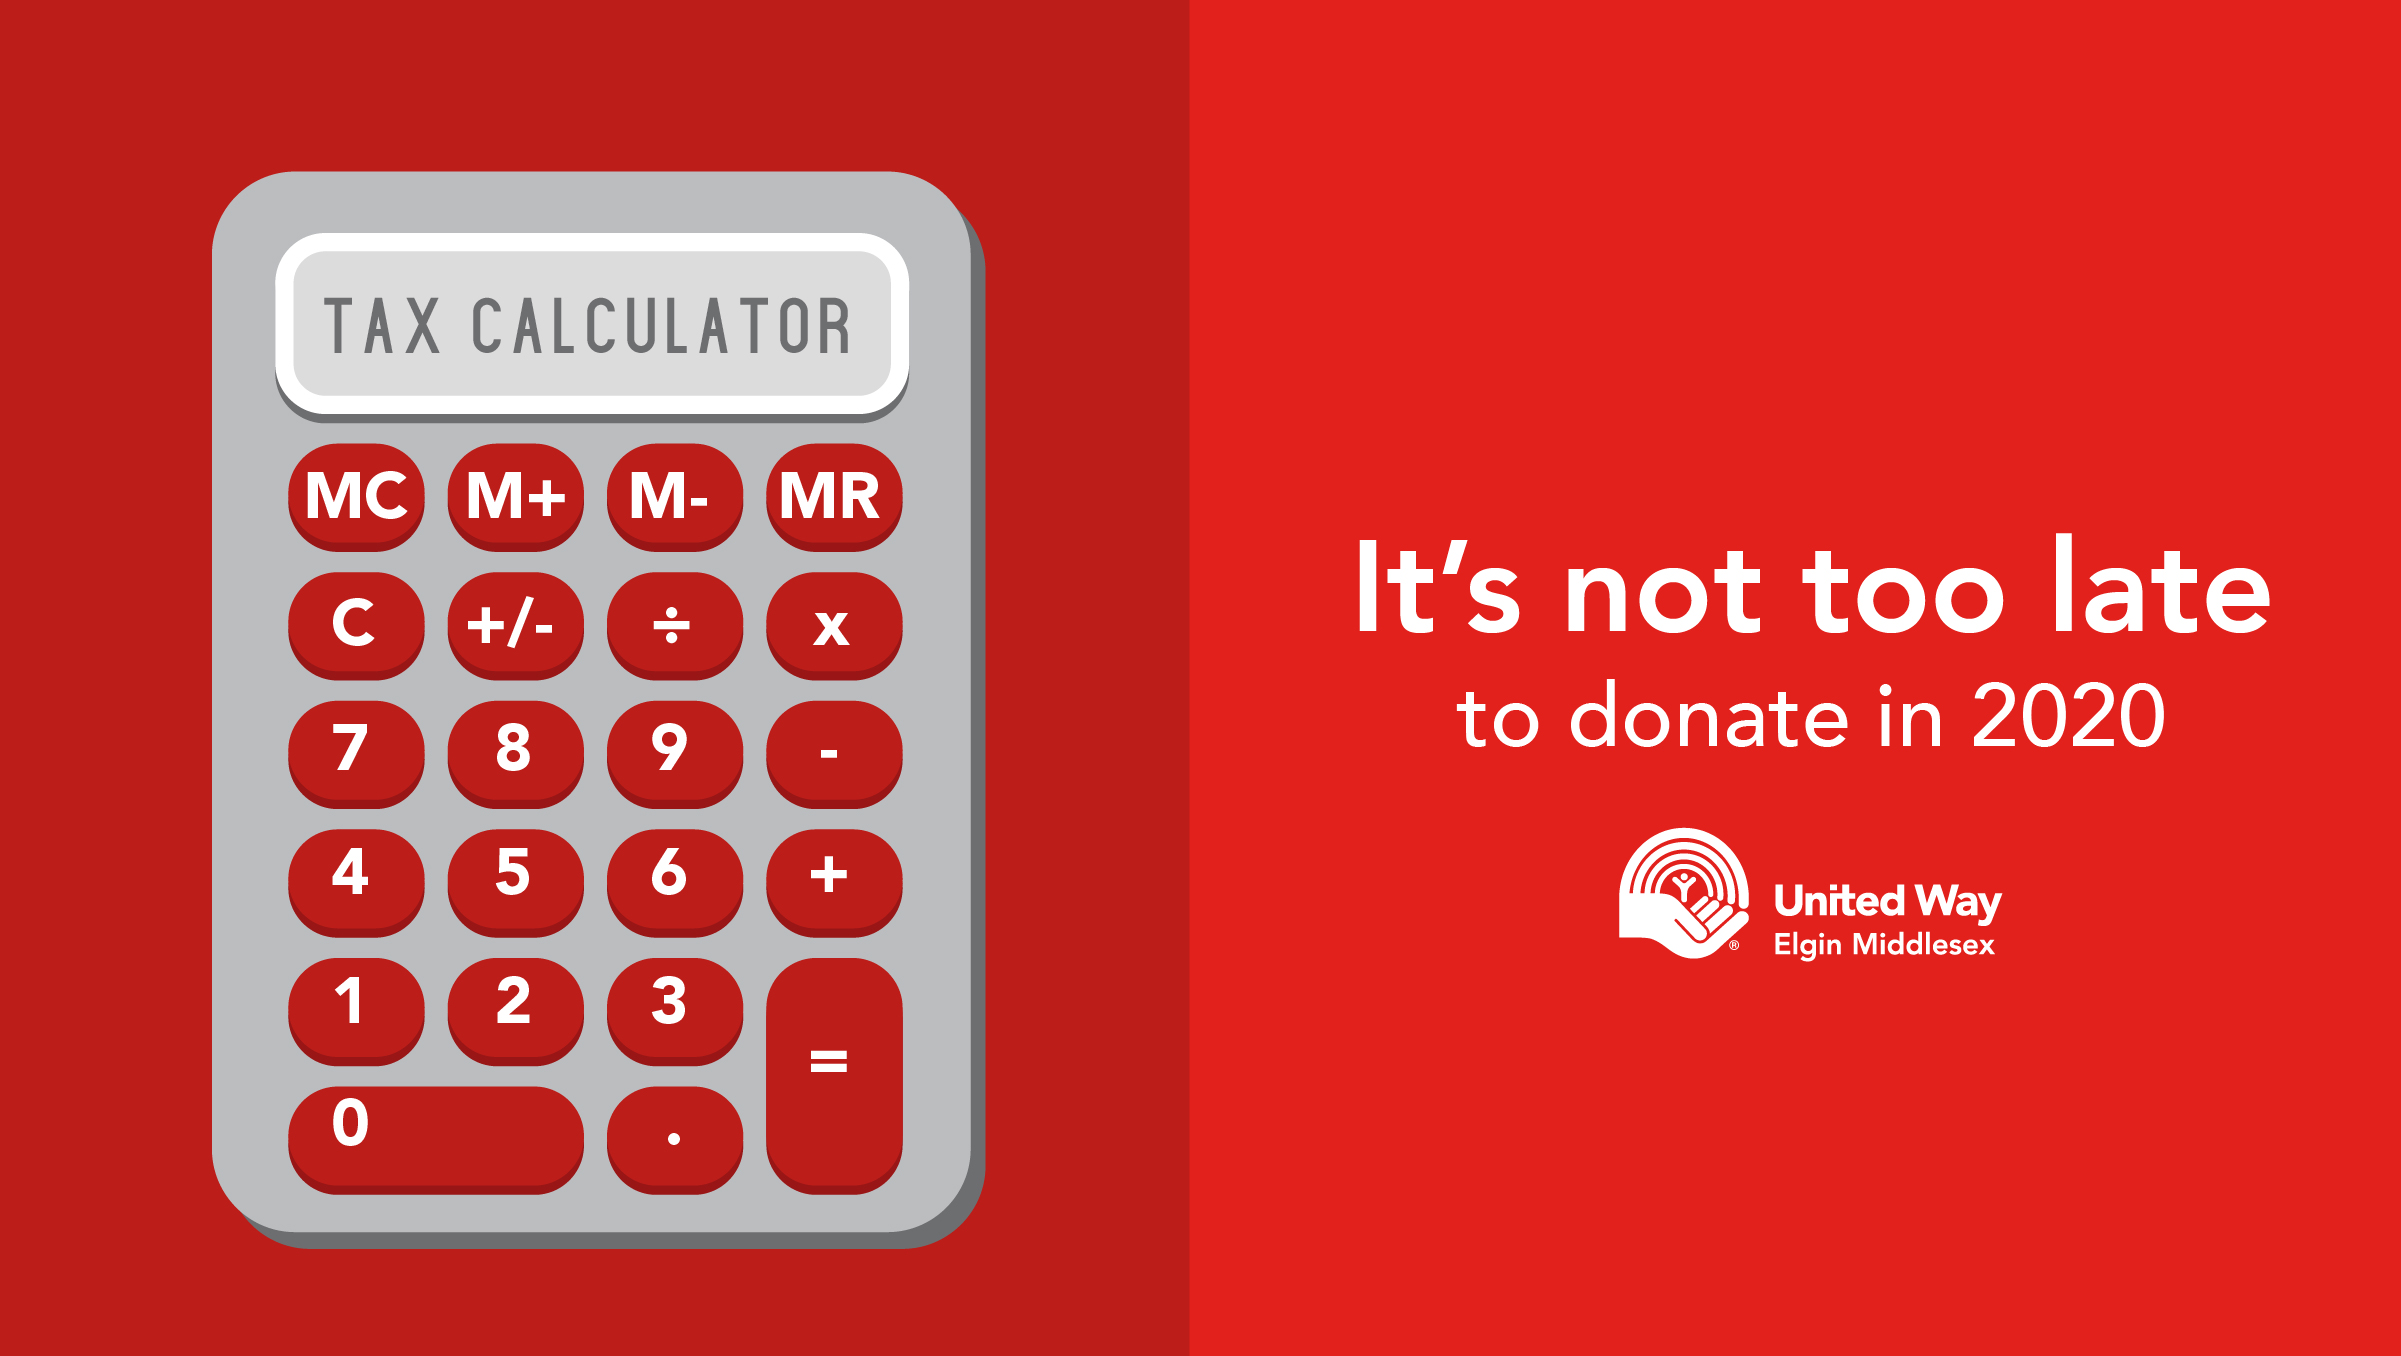 United Way tax calculator, It's not too late to donate in 2020